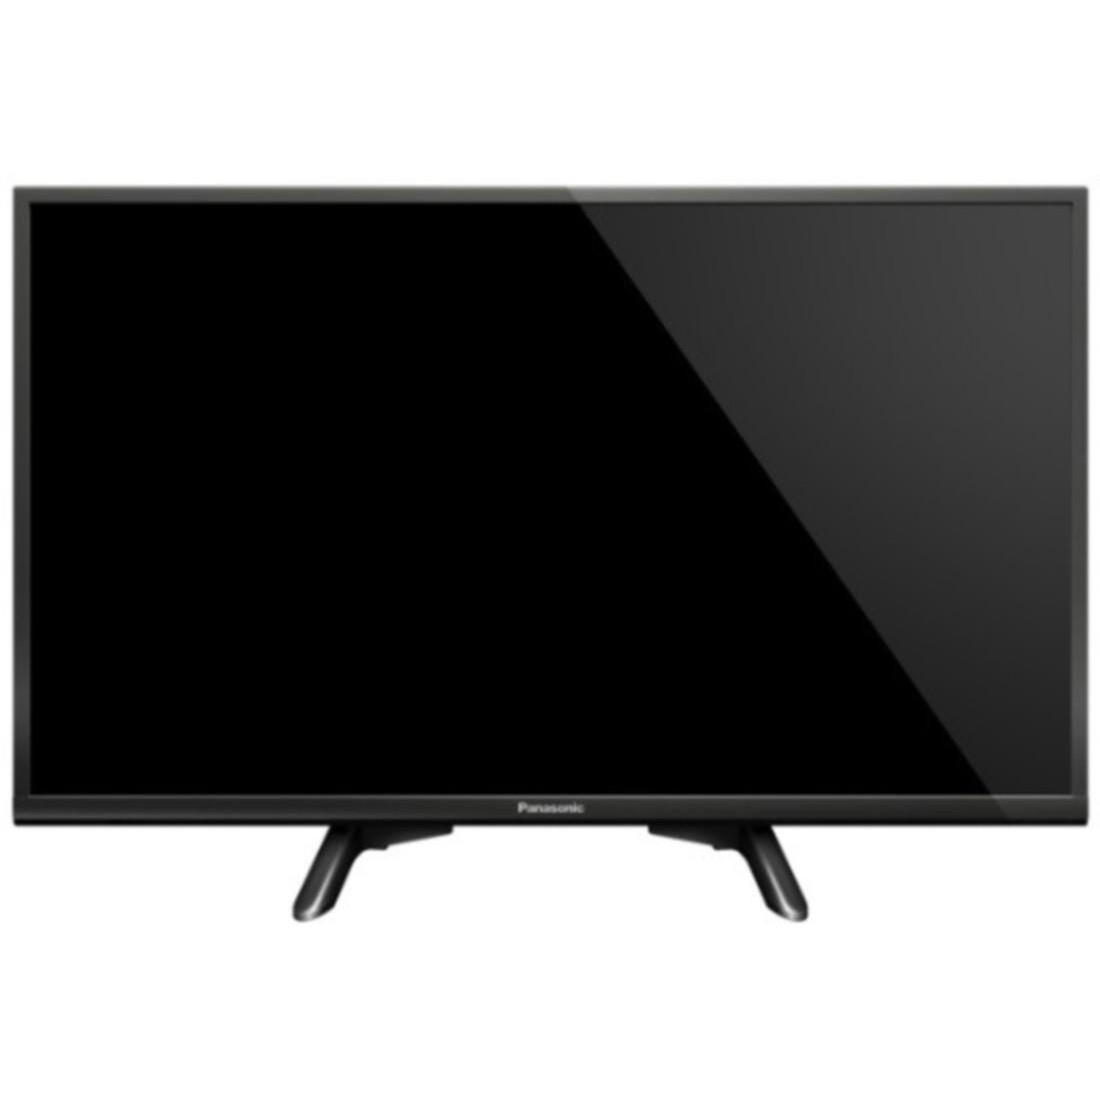 panasonic th 32a405d 80 cm 32 led tv hd ready photos images and wallpapers. Black Bedroom Furniture Sets. Home Design Ideas